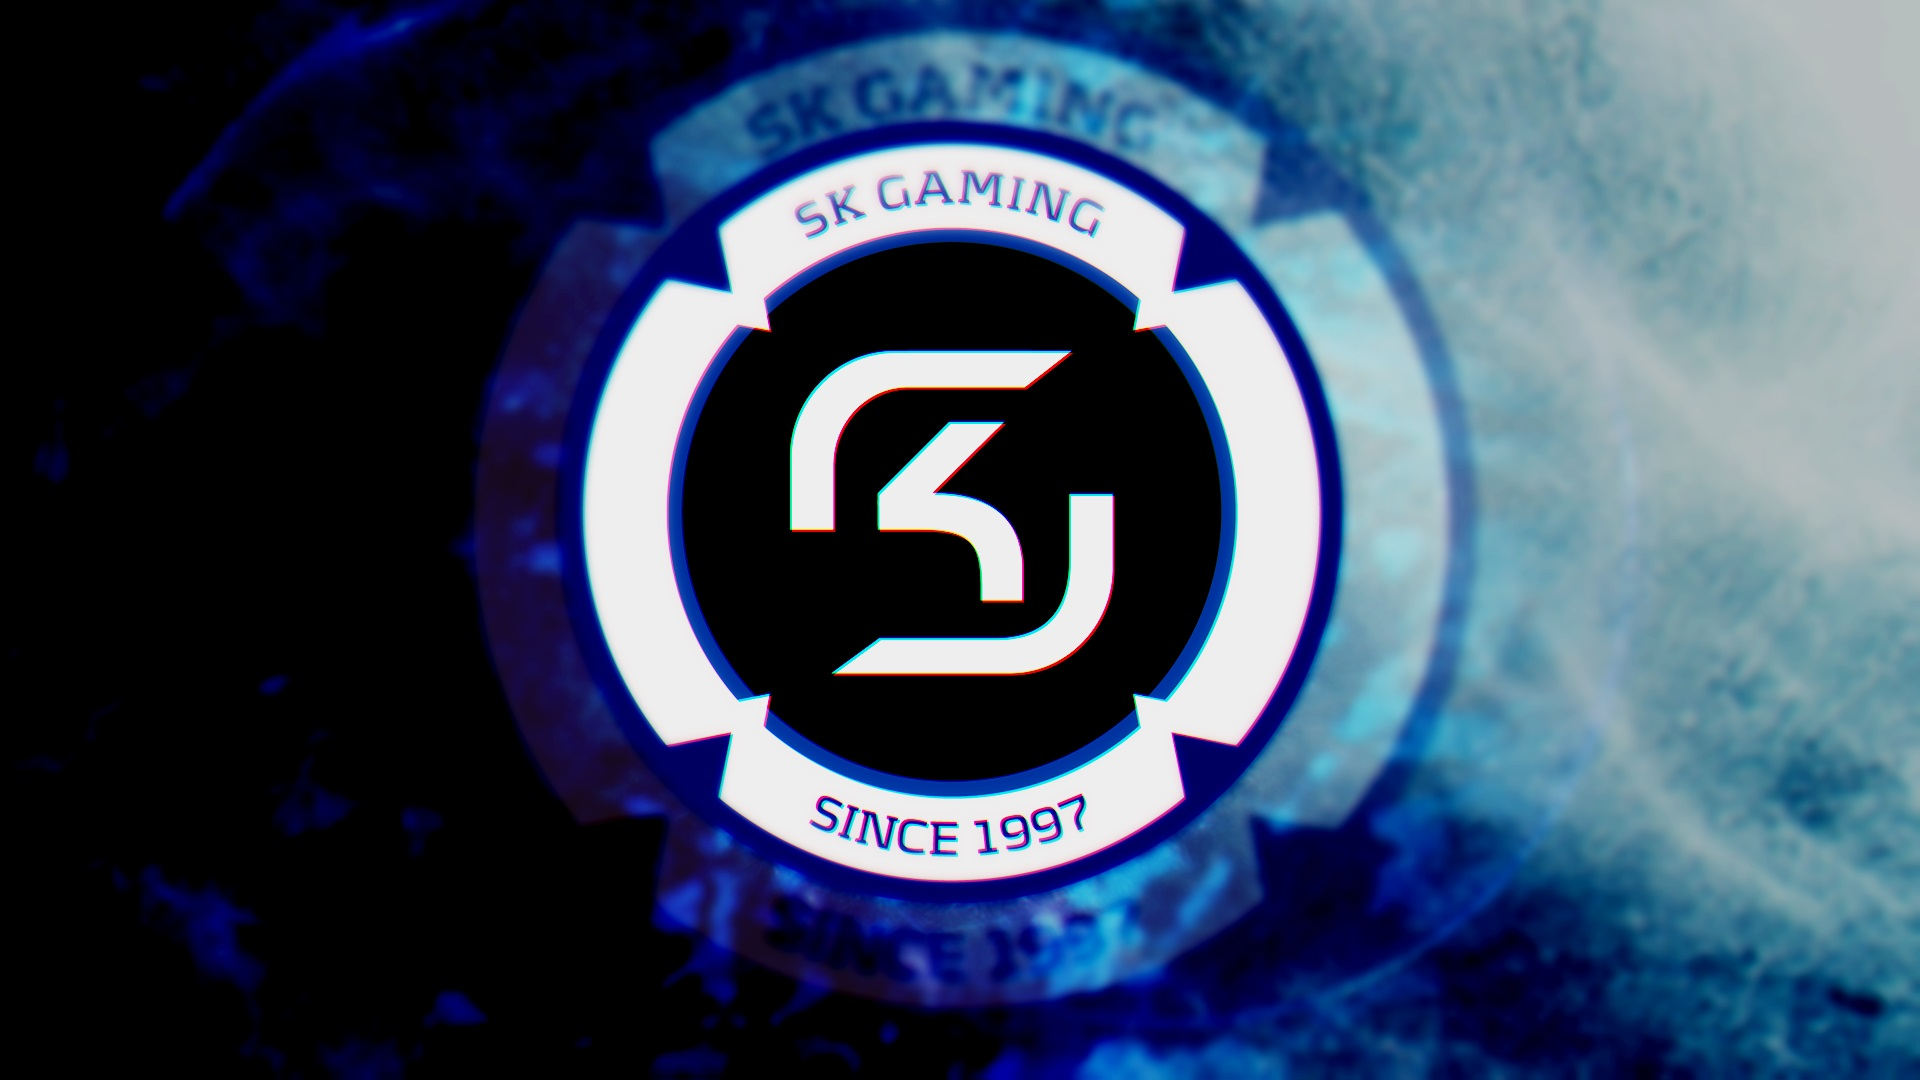 8 Cool SK Gaming Wallpapers - BC-GB